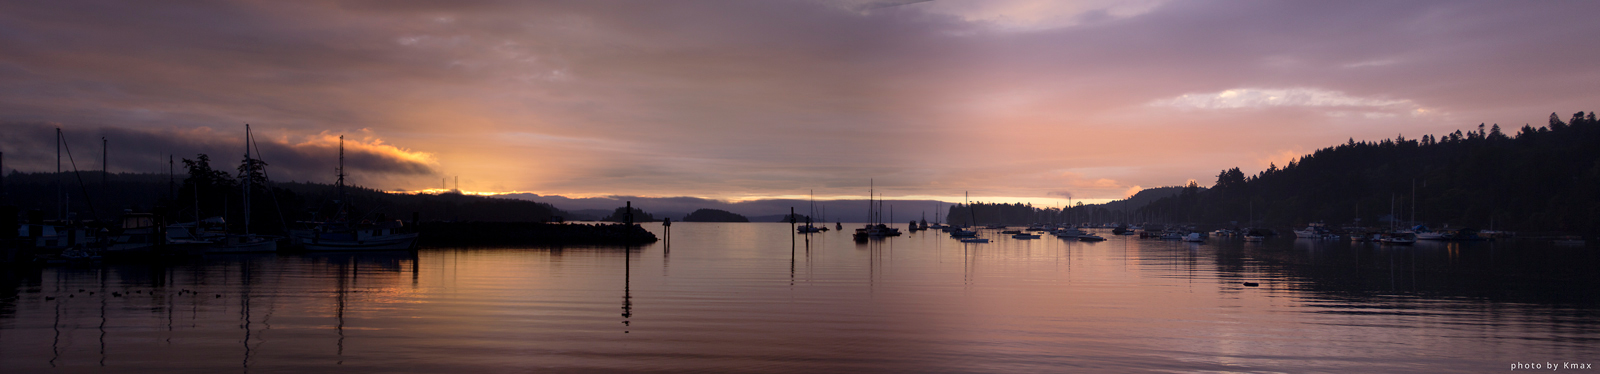 Sunrise over Ganges Harbour, Salt Spring Island, BC